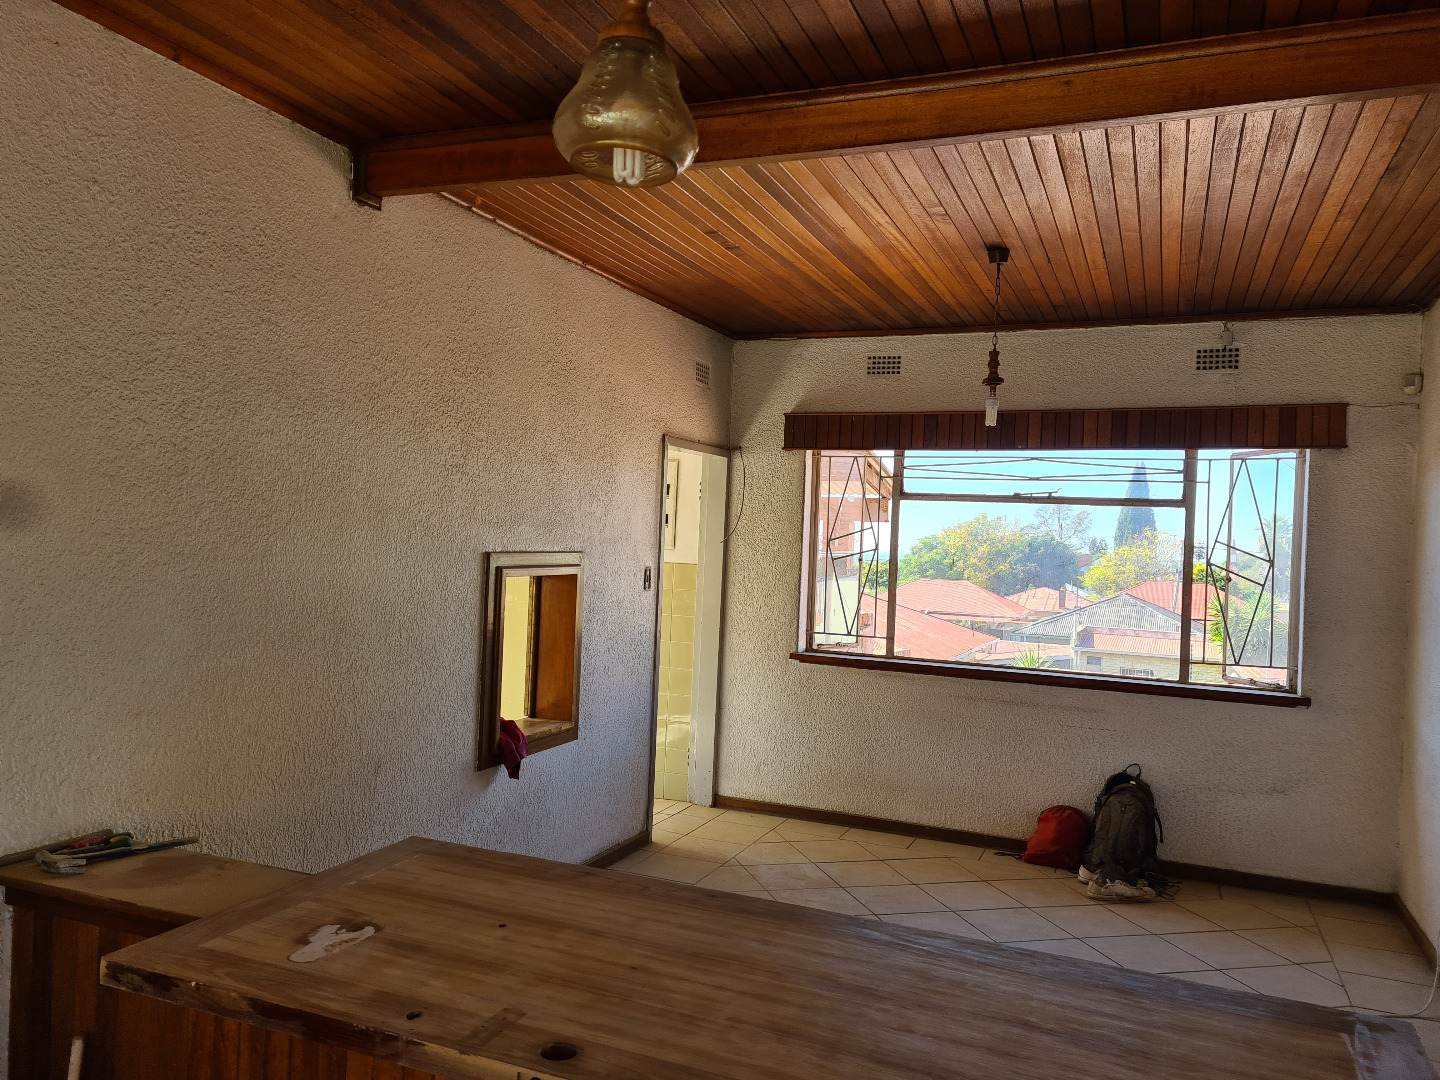 6 Bedroom House For Sale in Newlands